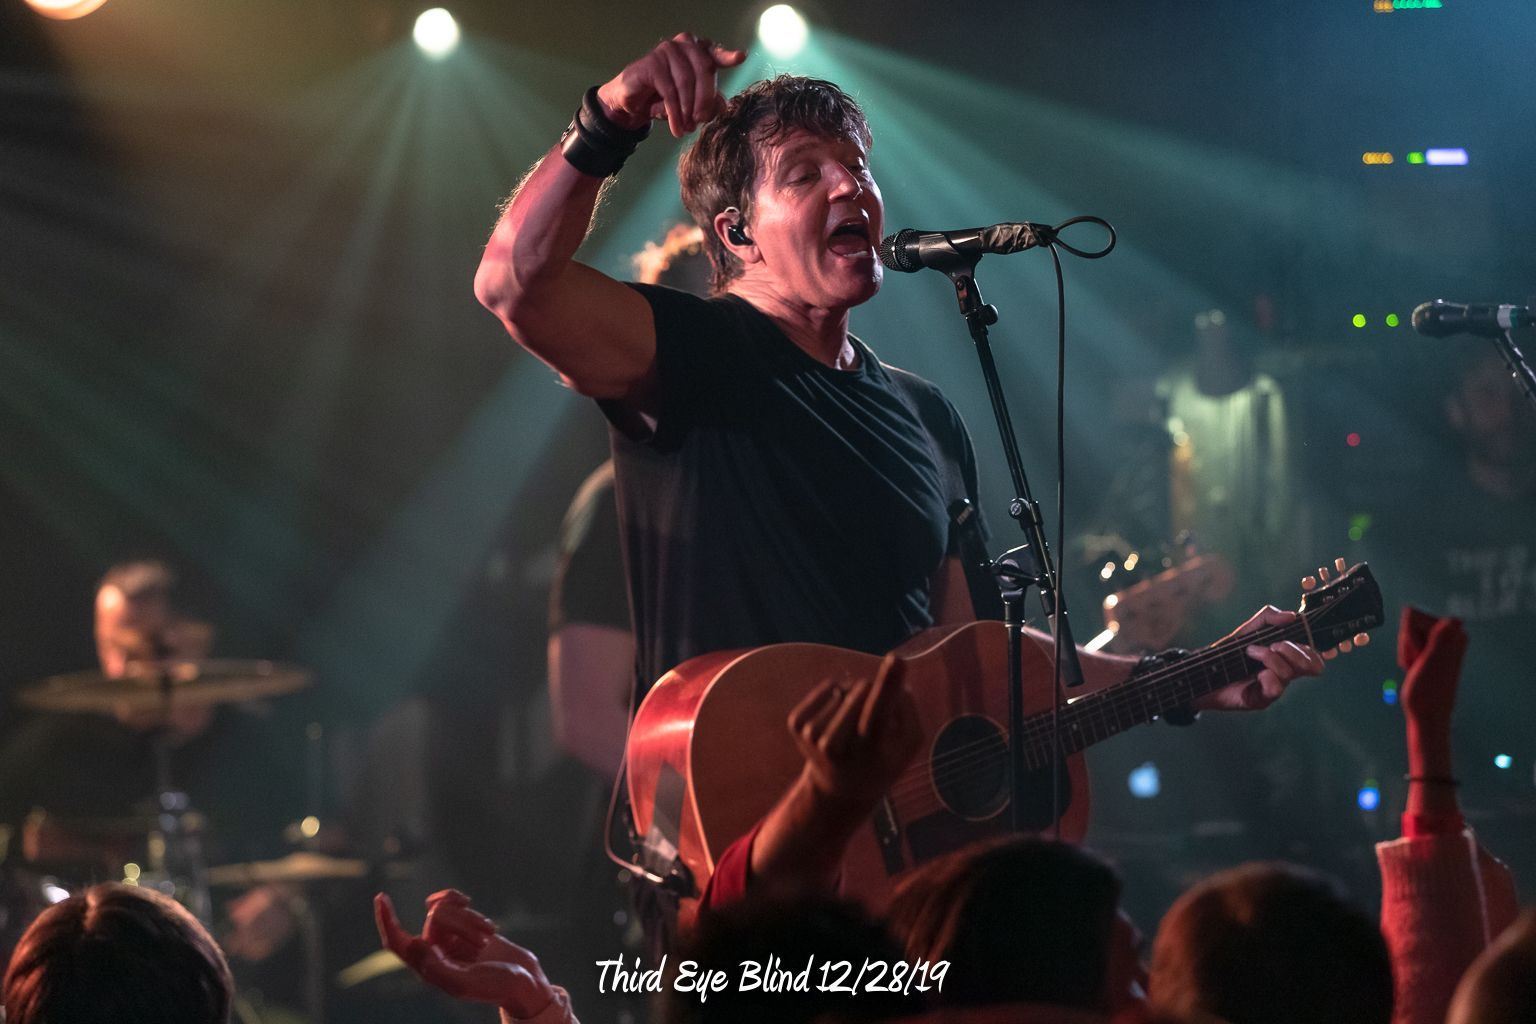 Third Eye Blind 12/28/19